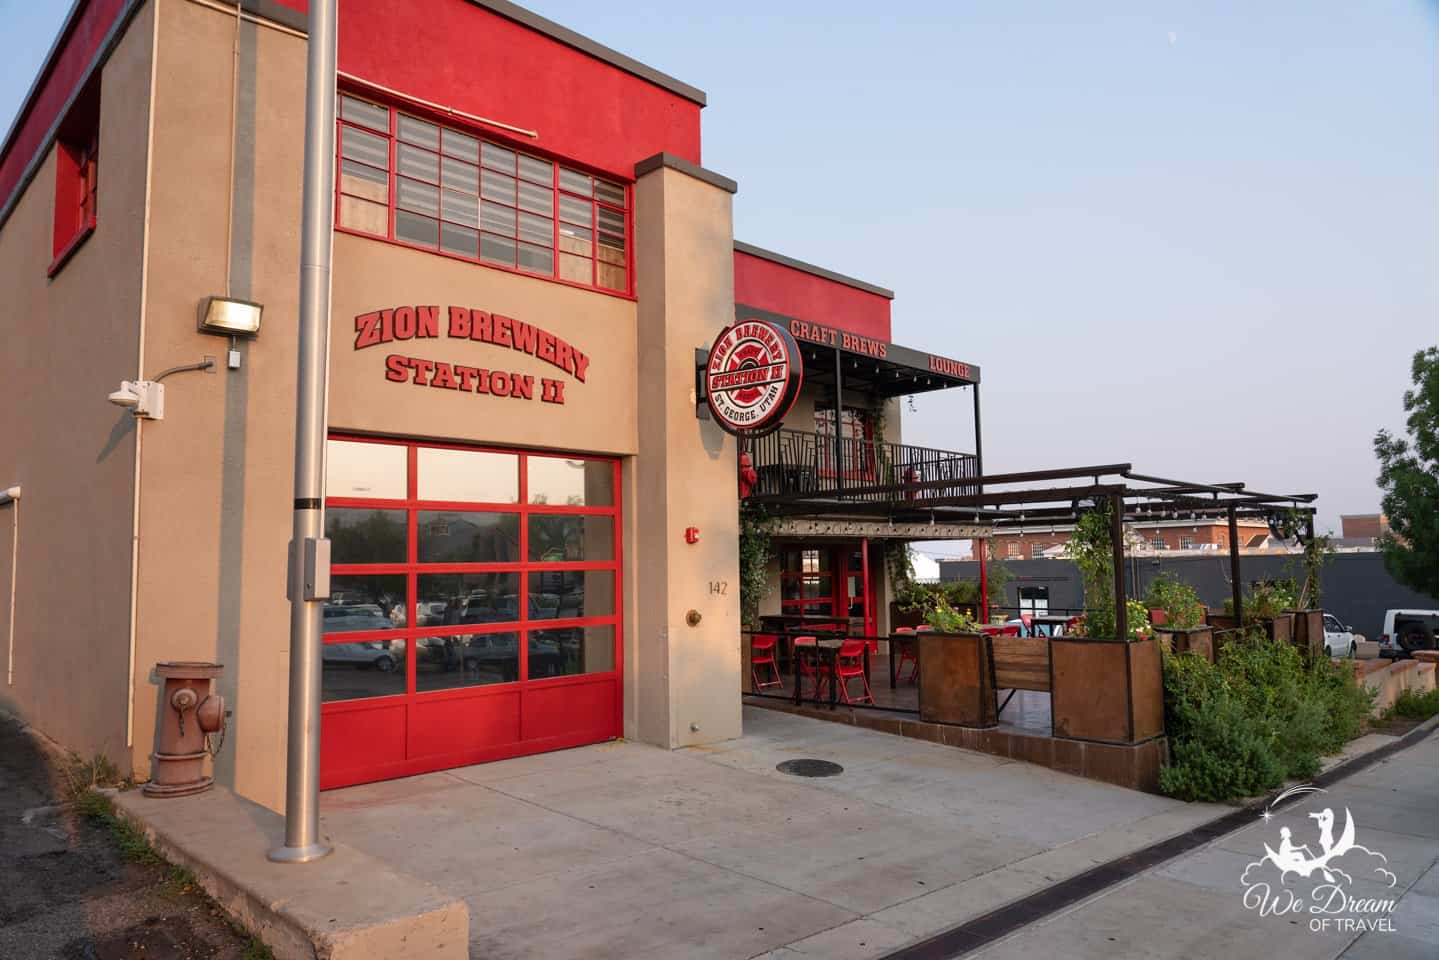 Zion Brewery in St George is housed in the 1918 firehouse